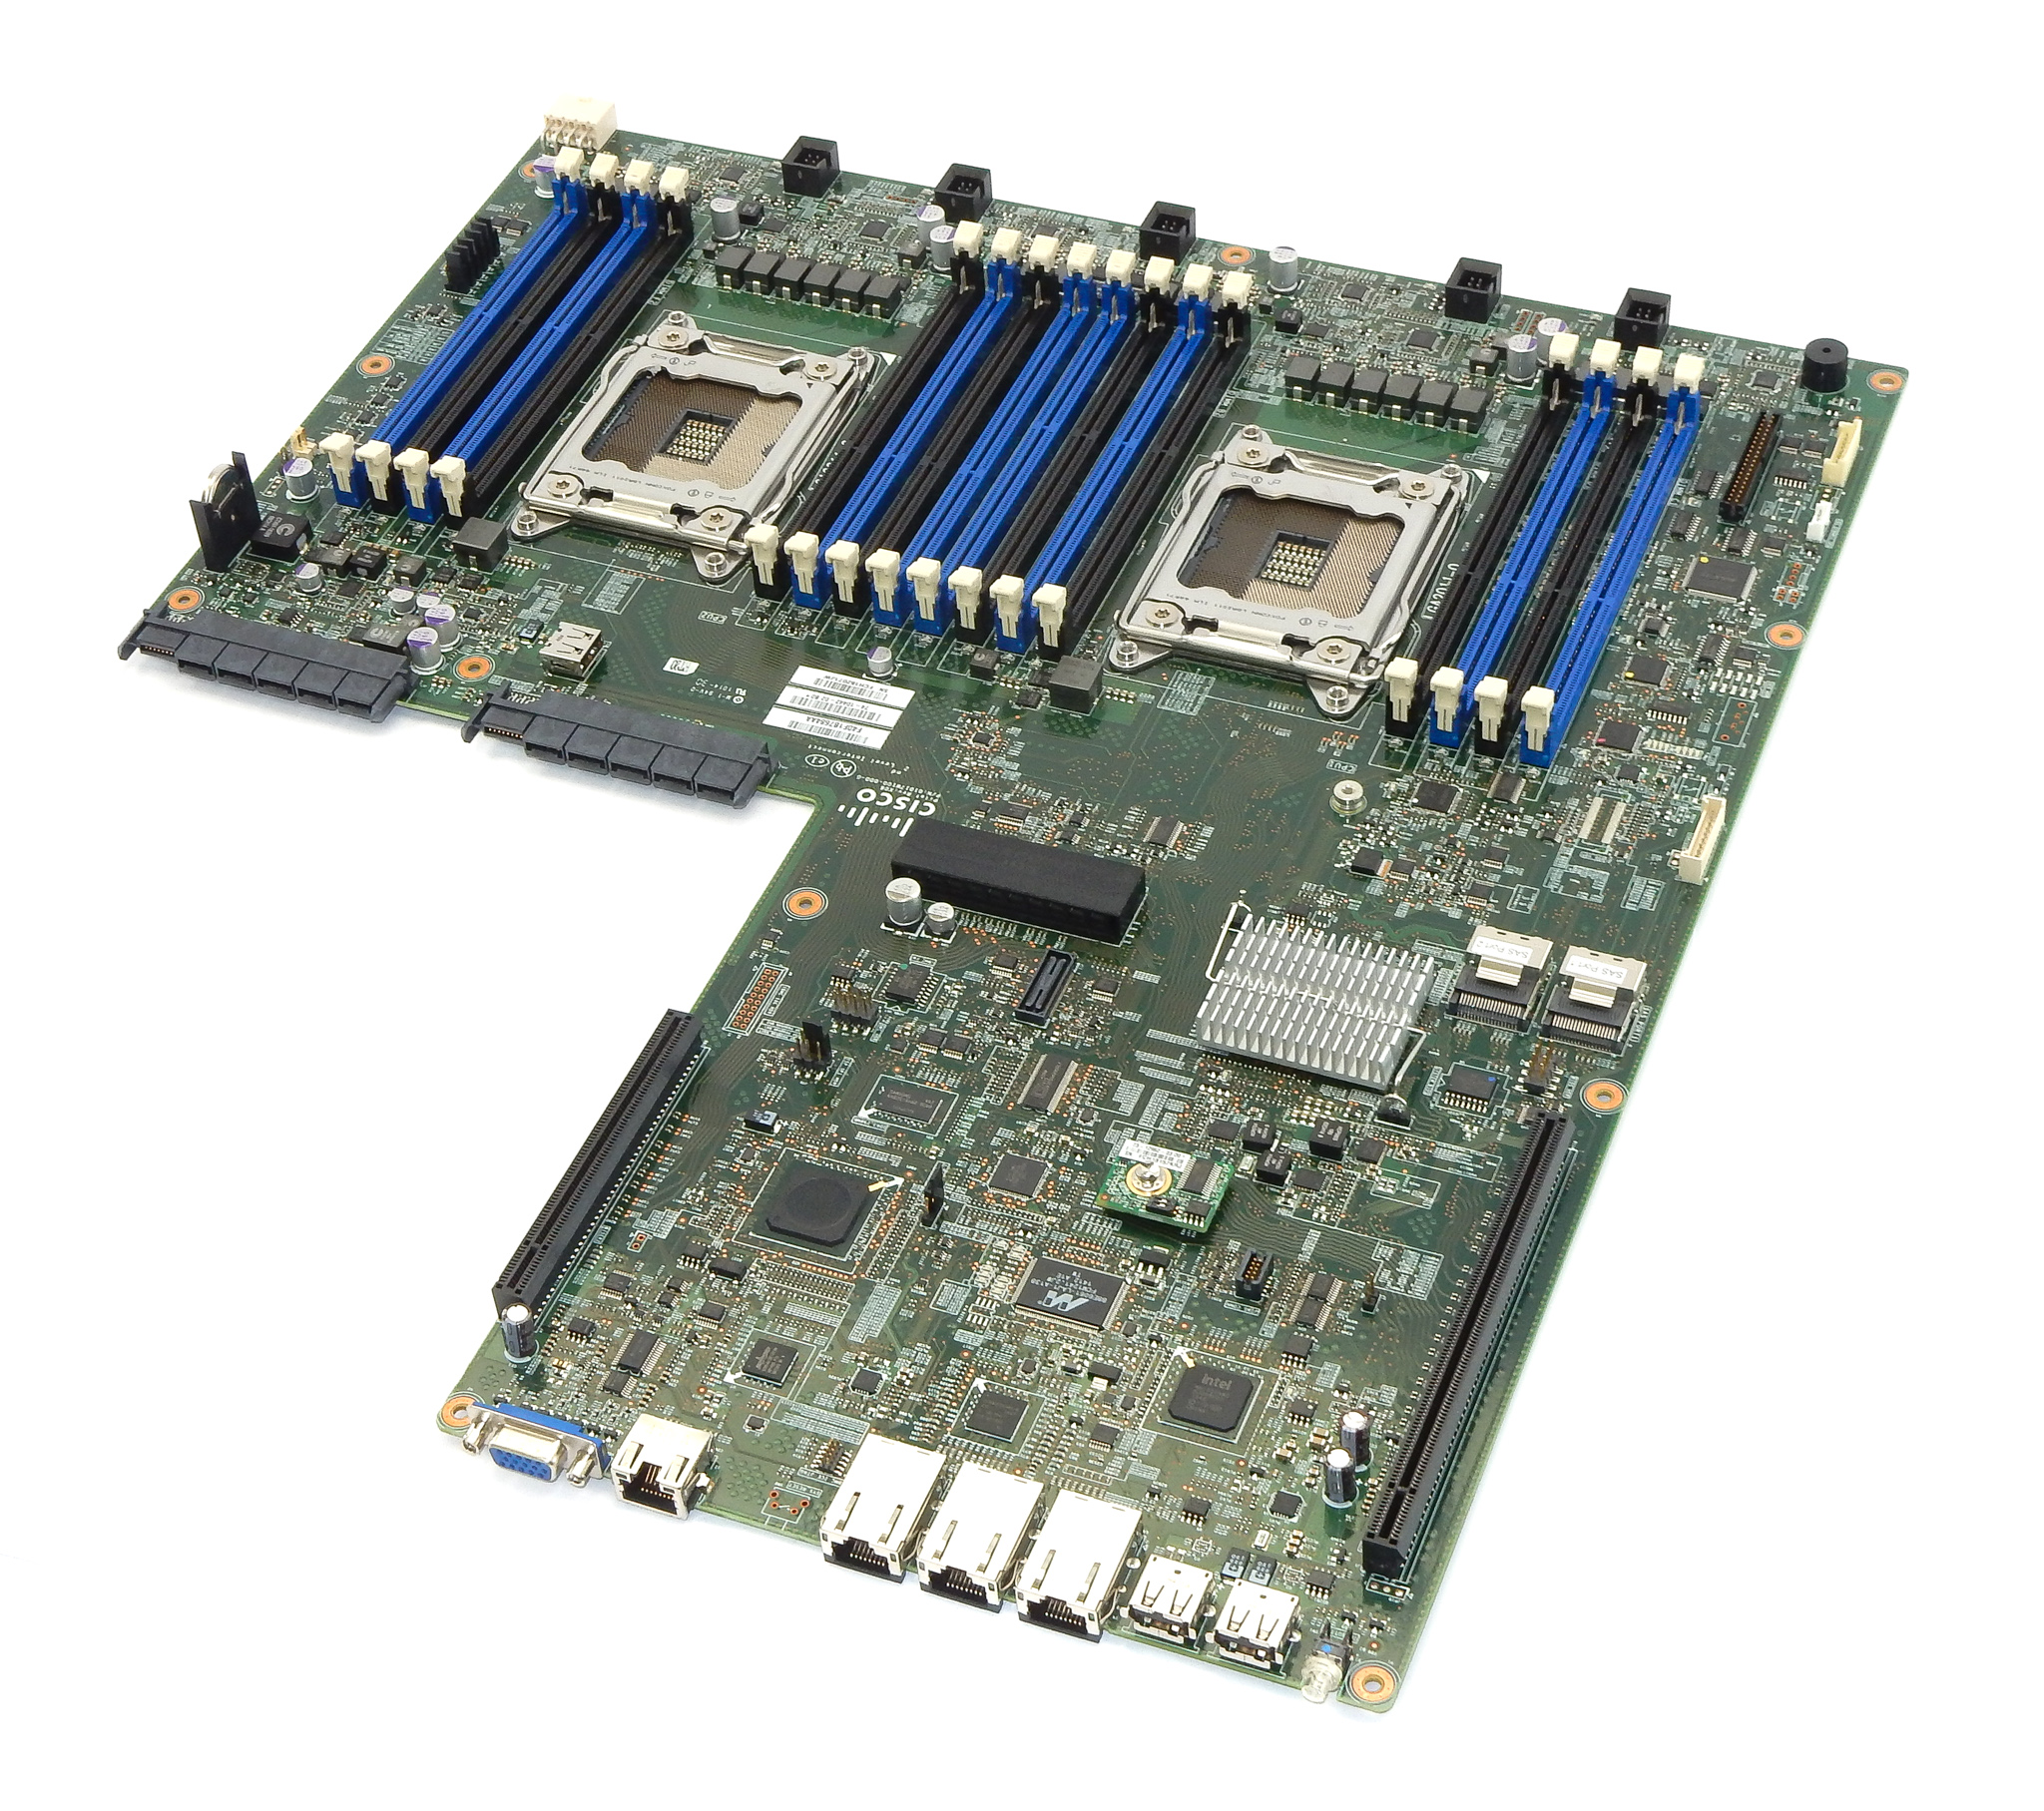 Cisco 74-10442-02 UCS C220 M3 Dual Socket LGA2011 System Board